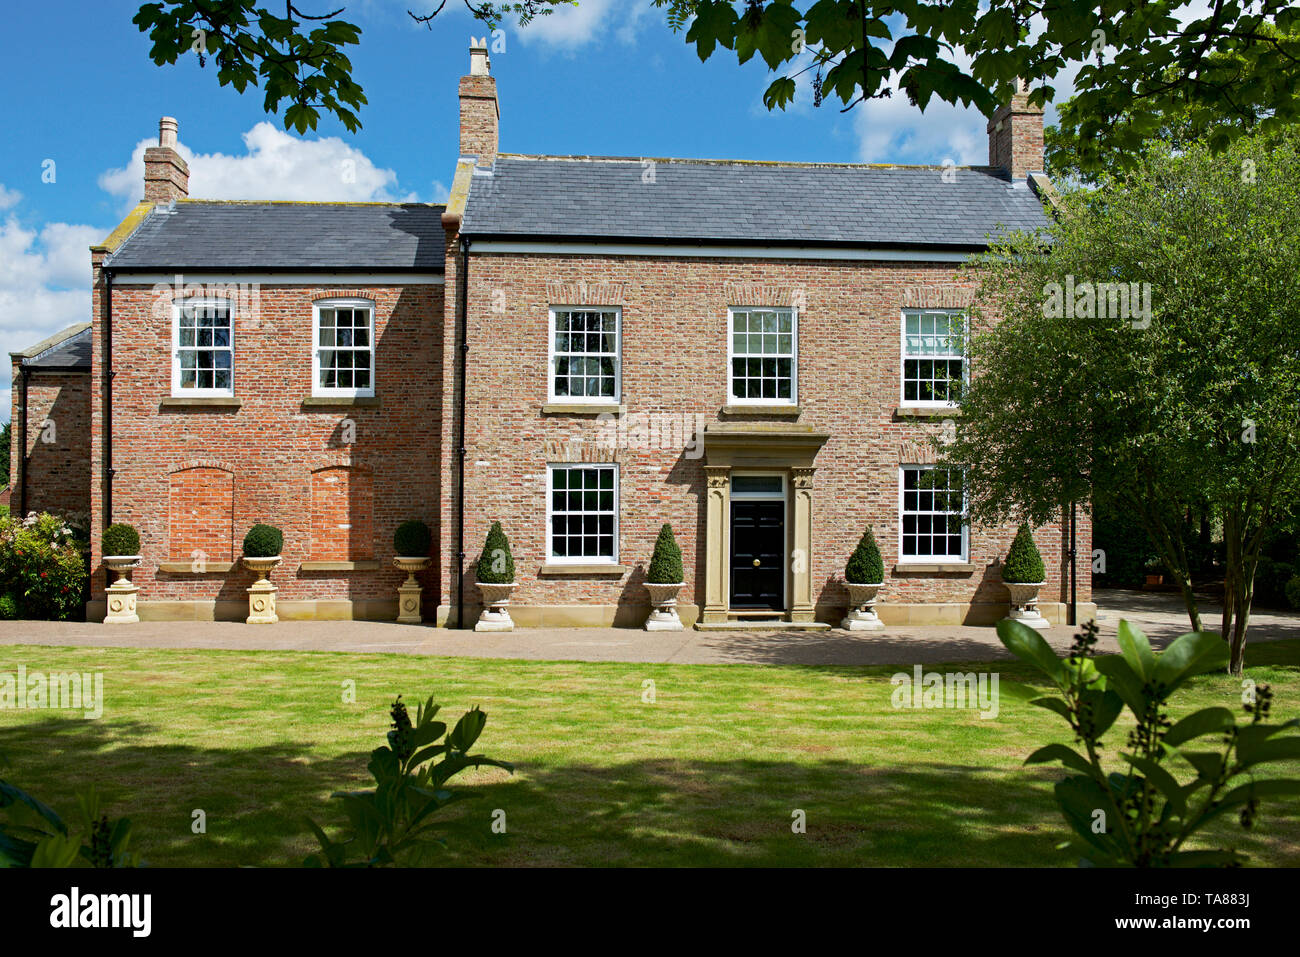 Reedness Hall, in the village of Reedness, one of the Marshland villages, East Yorkshire, England UK - Stock Image